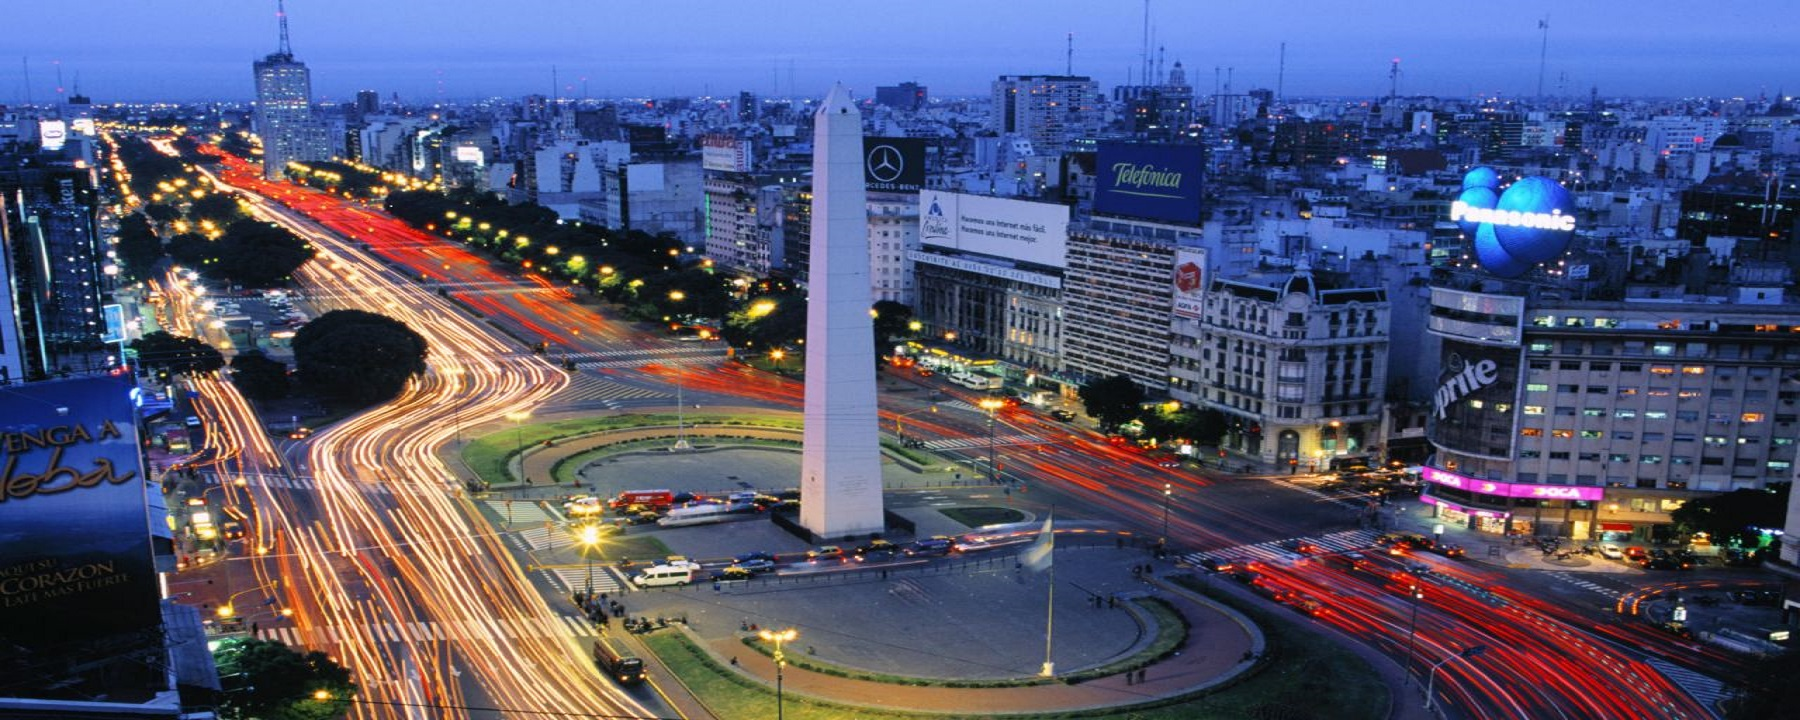 an overview of the city of buenos aires in argentina